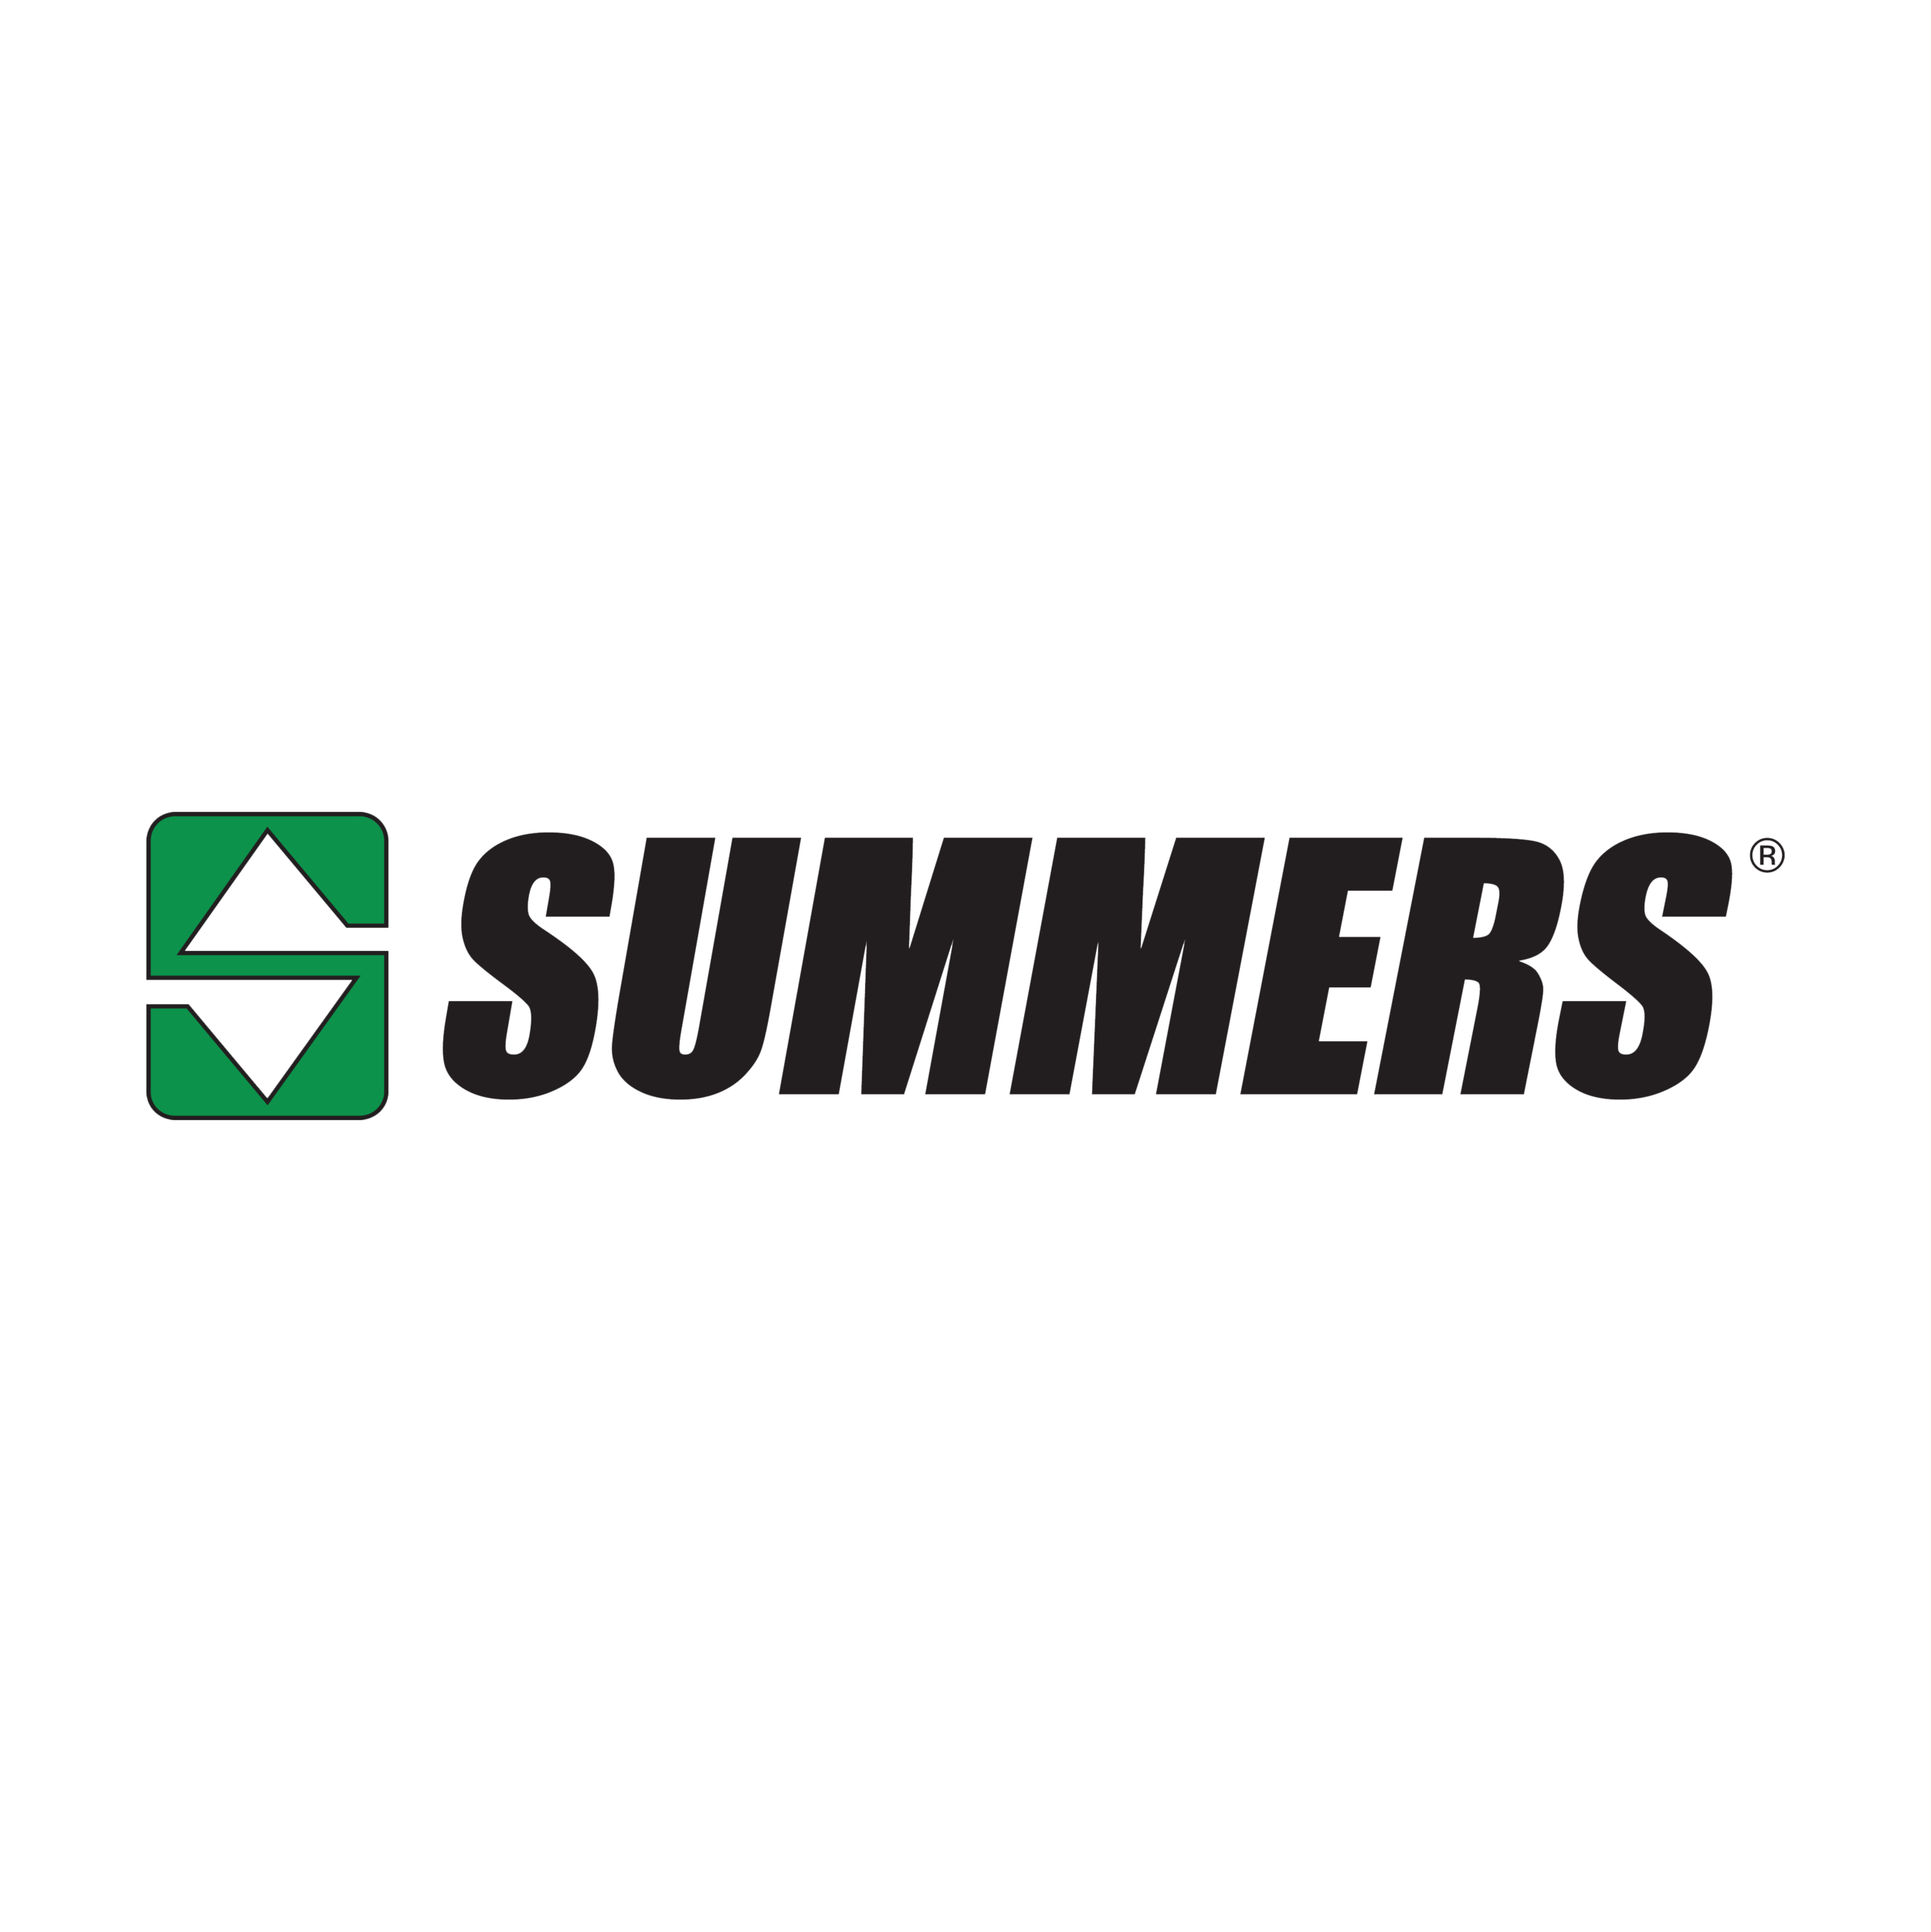 Summers - Designs and manufactures equipment for farmers to do seed bed preparation, chemical application, tillage and rock removal.